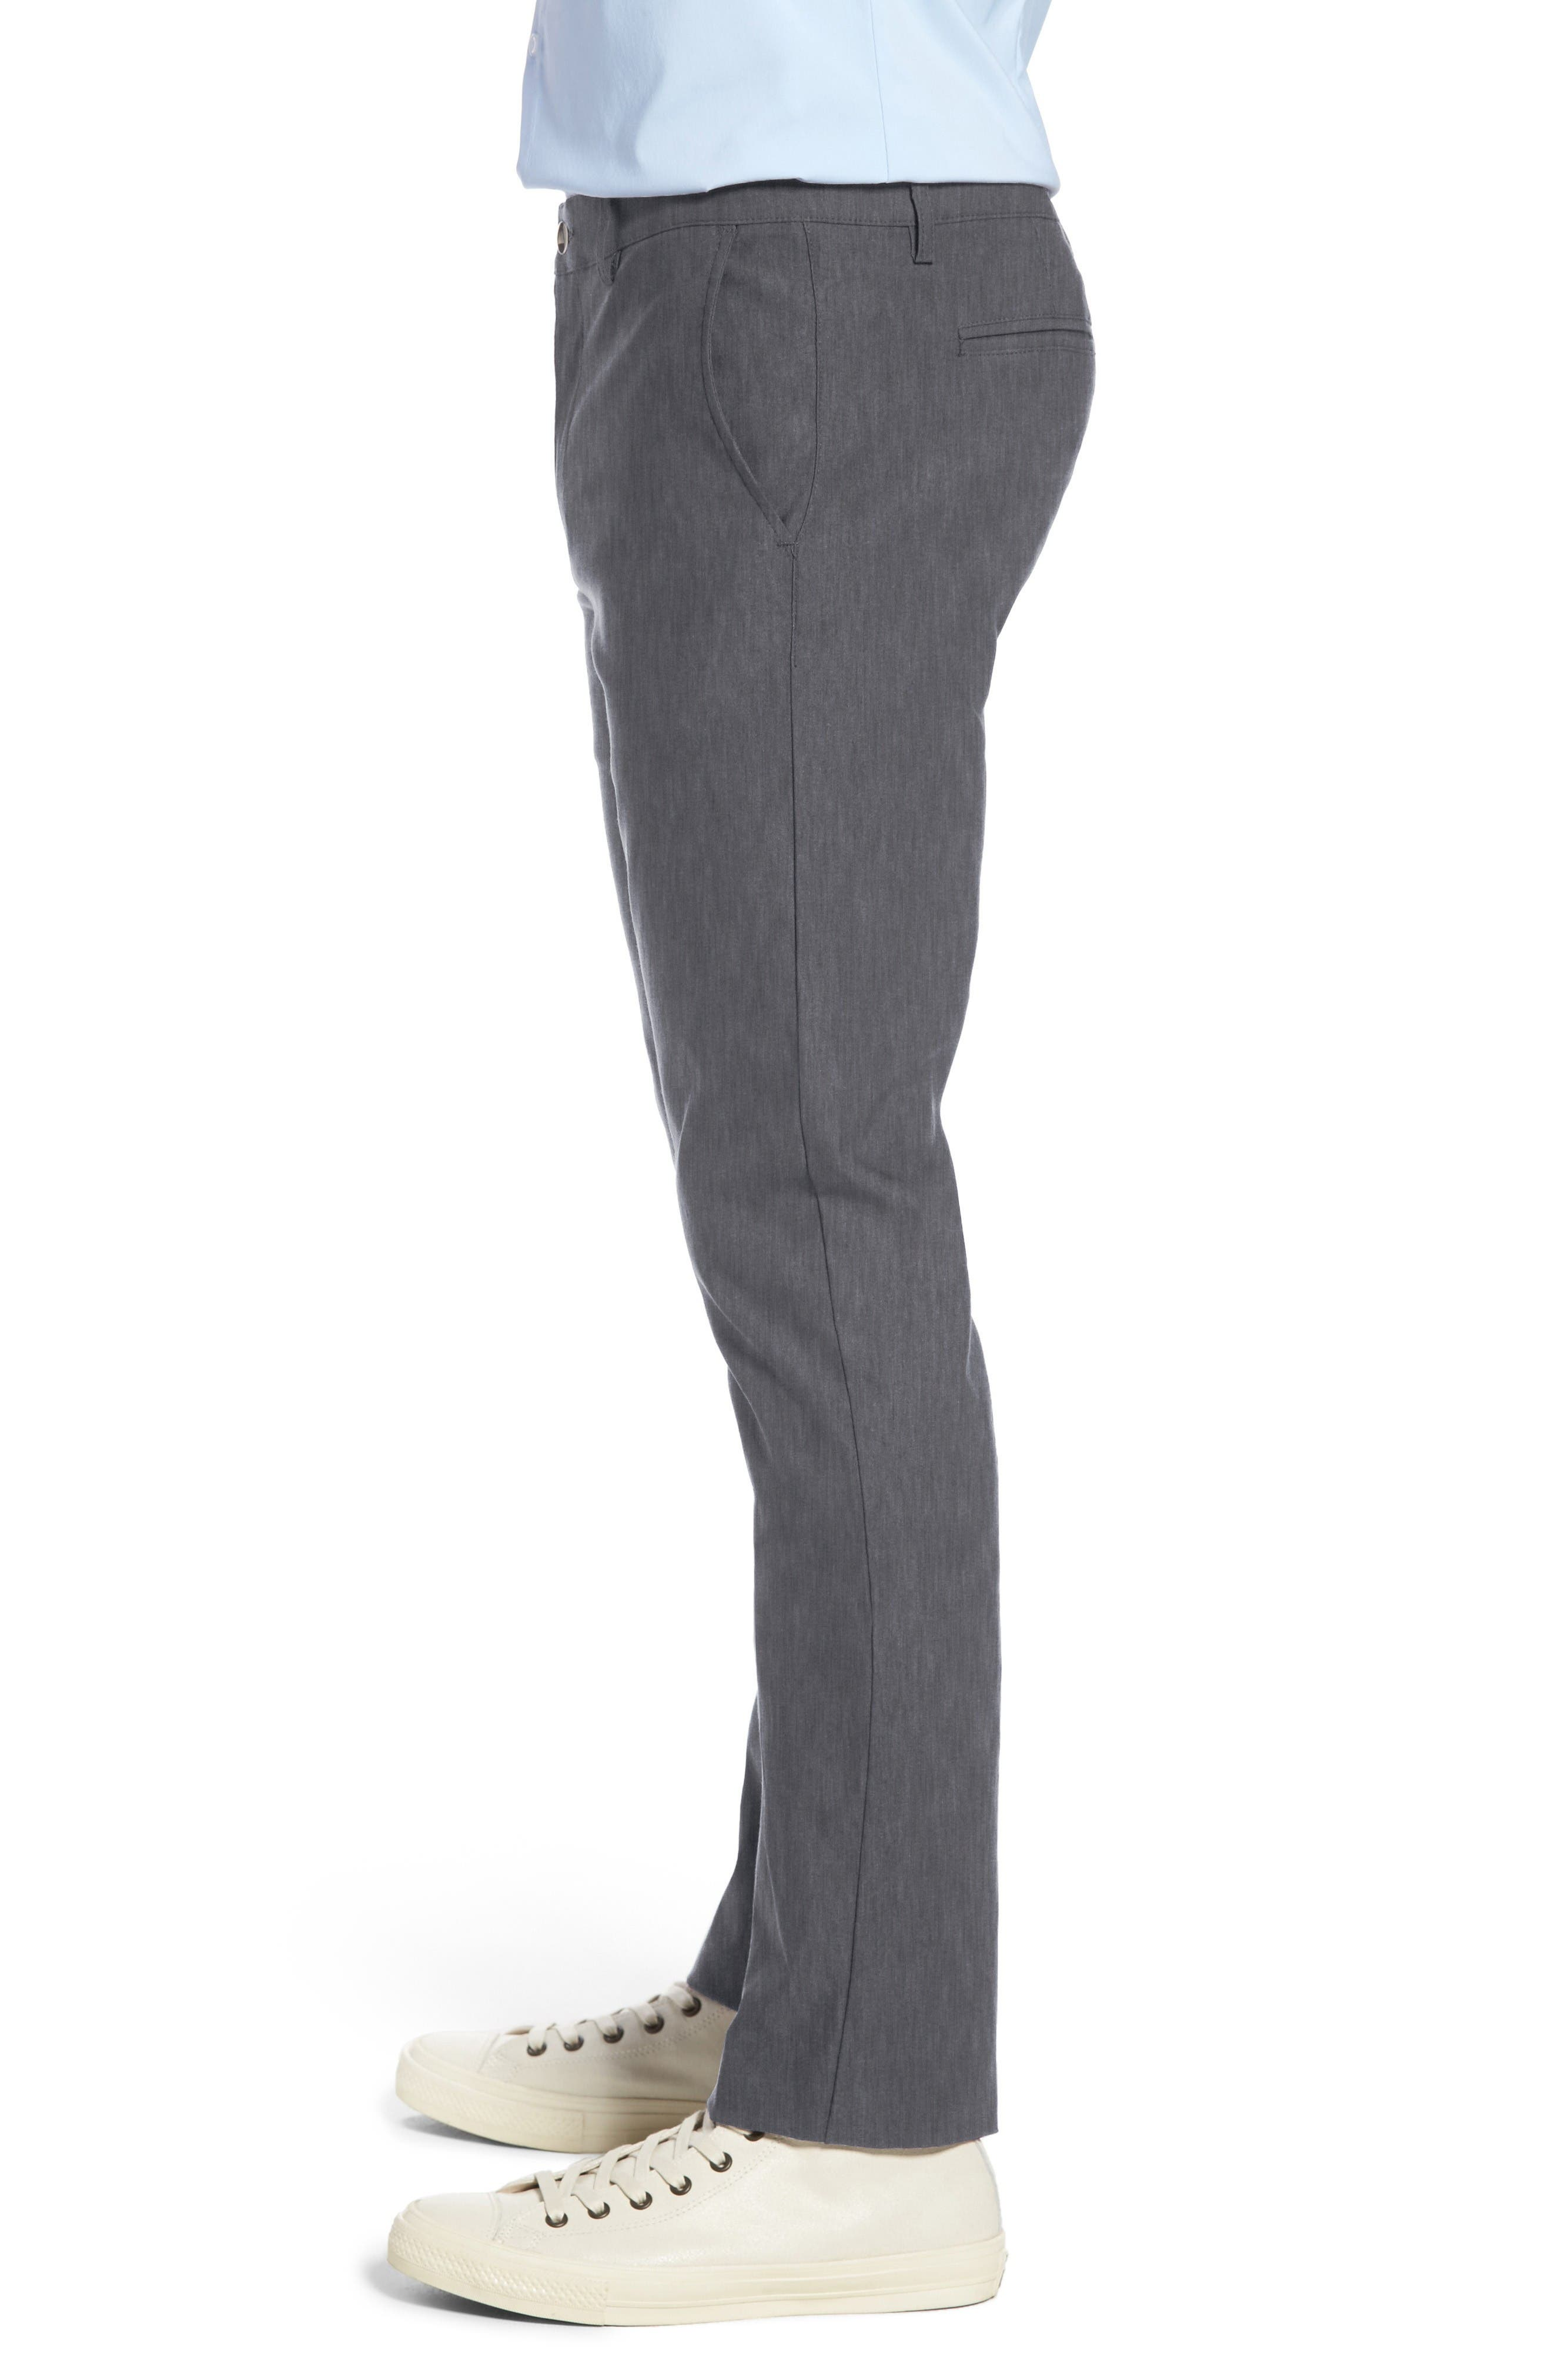 Vice President Trim Fit Performance Chinos,                             Alternate thumbnail 3, color,                             Grey